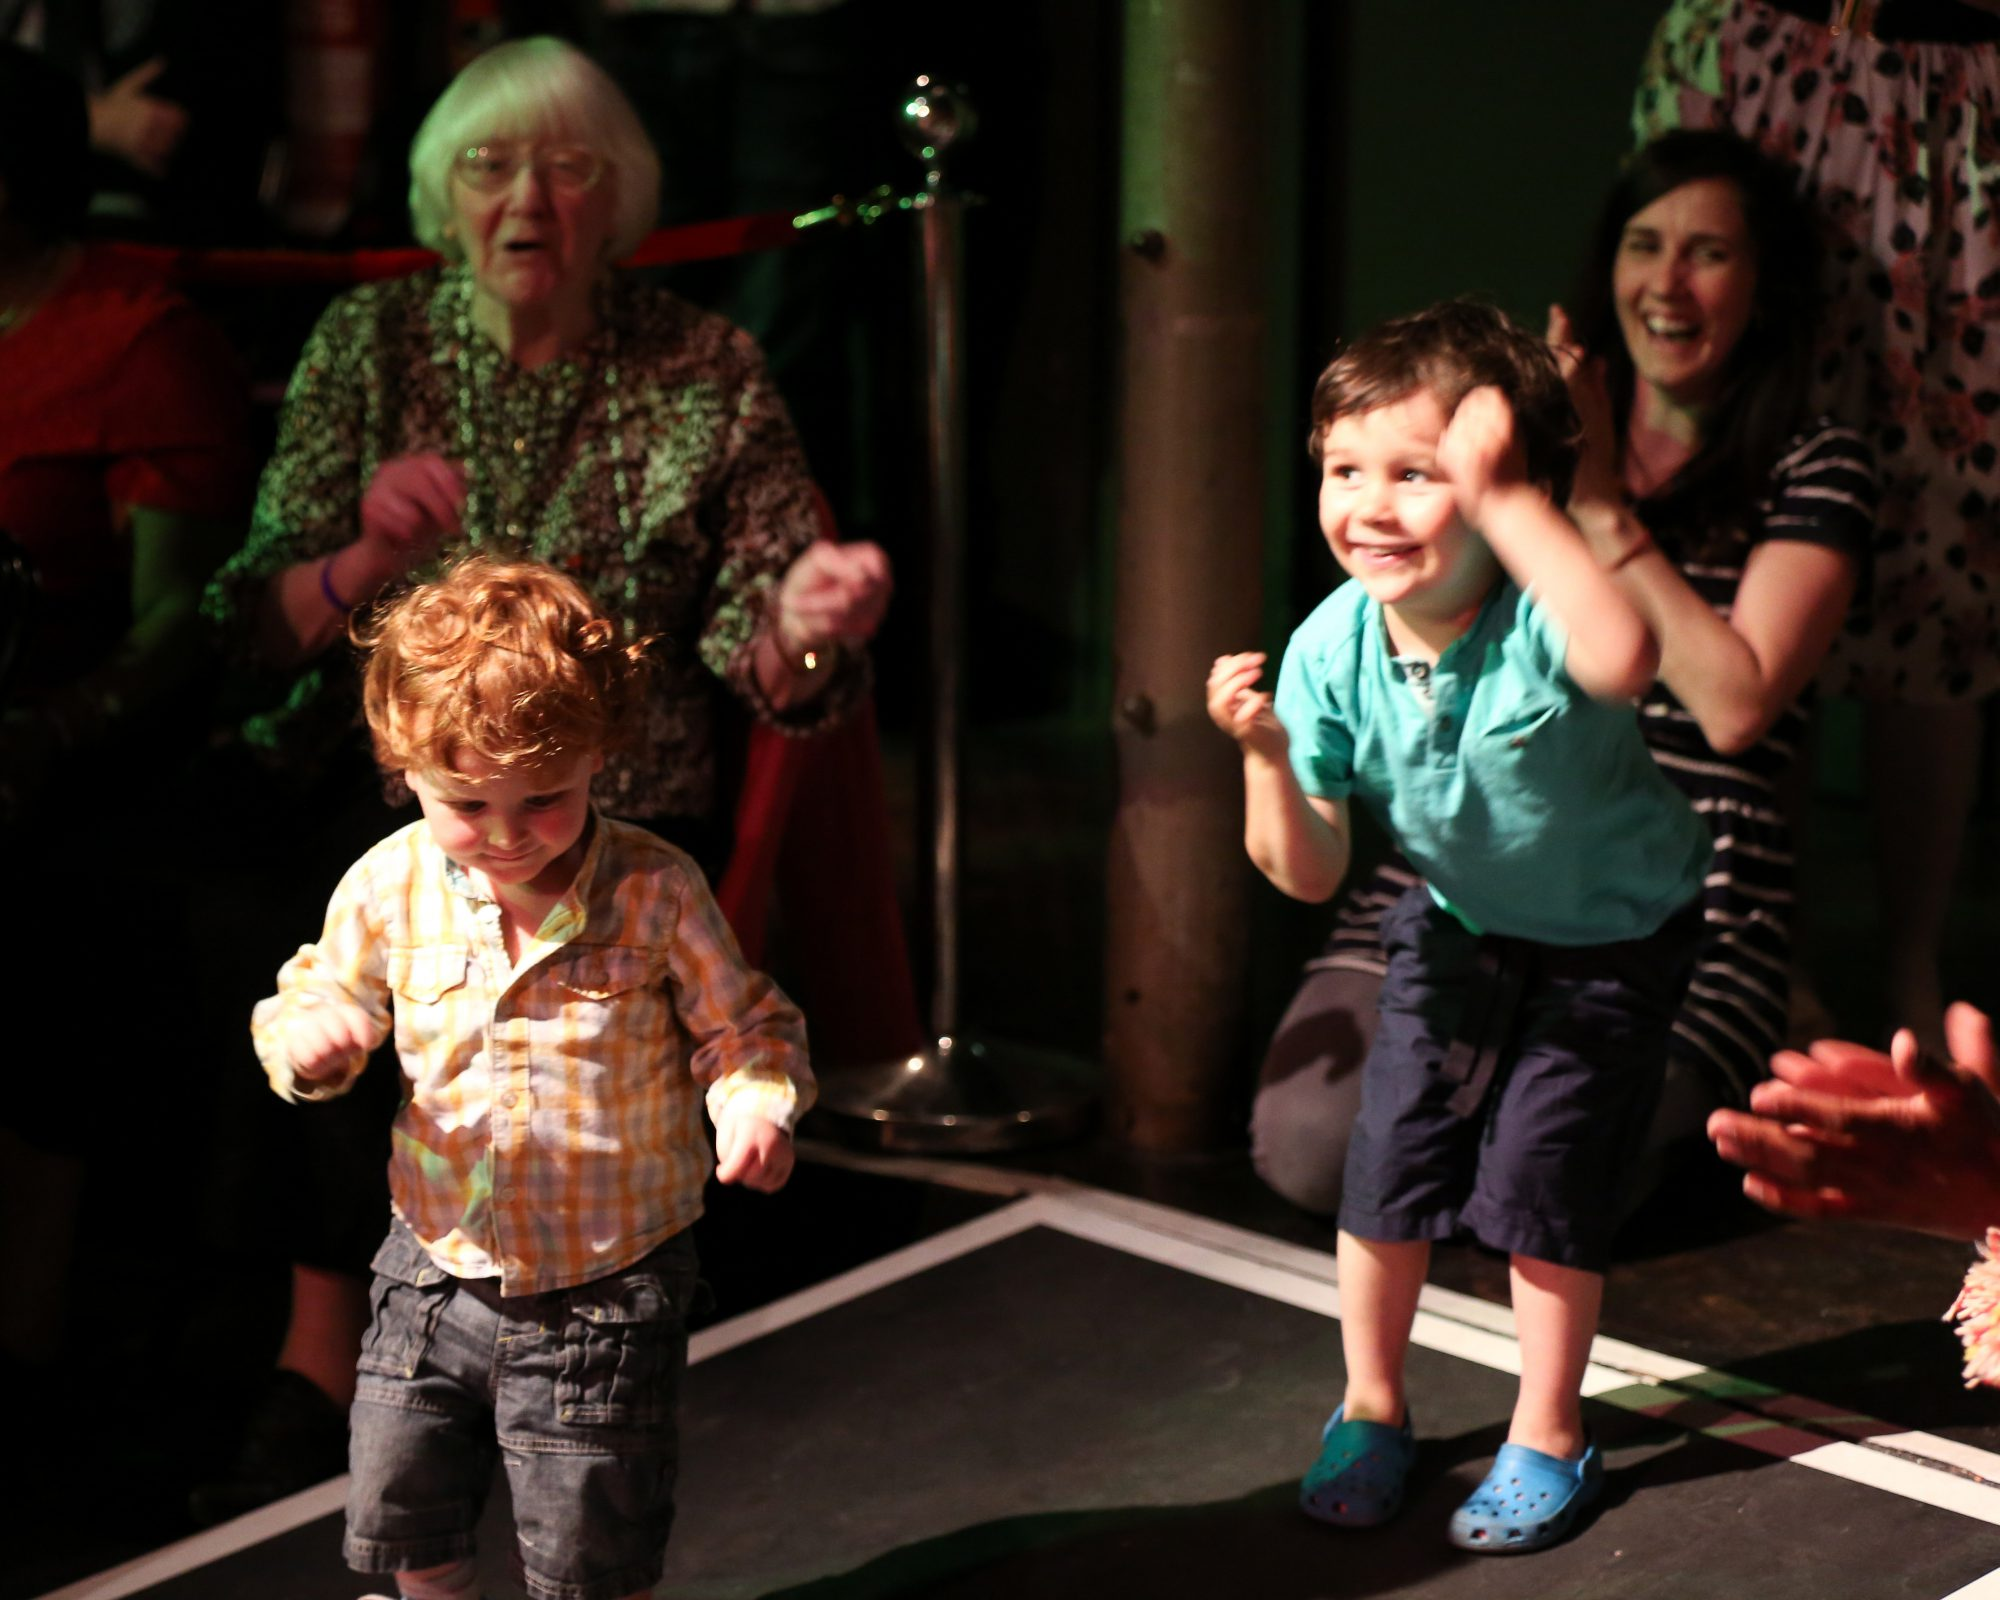 Children and older people dancing